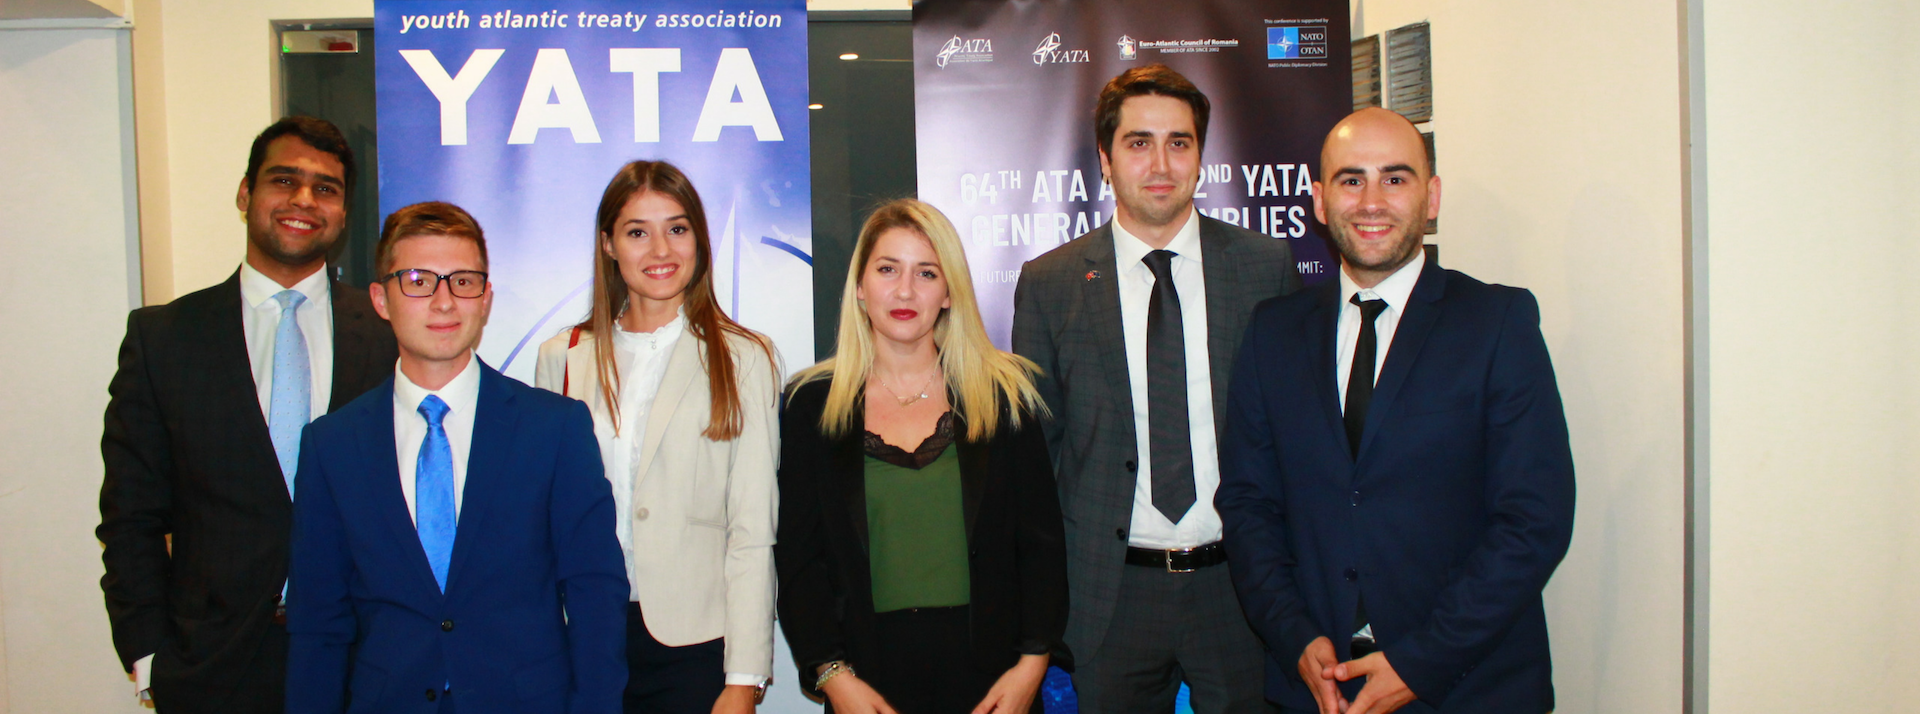 YATA Executive Board